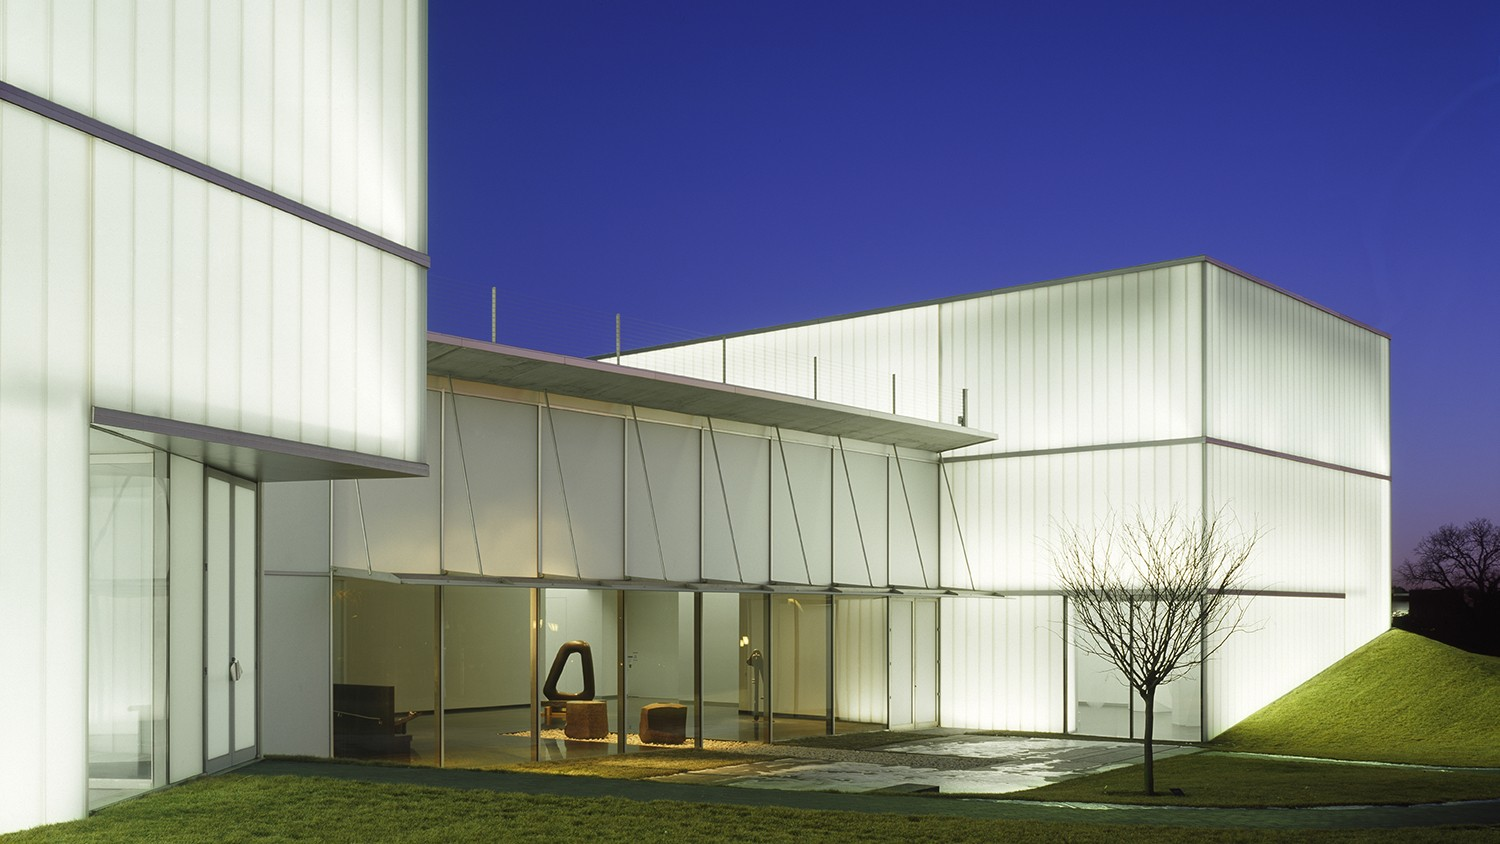 https://s3.us-east-2.amazonaws.com/steven-holl/uploads/projects/project-images/RolandHalbe_NAMA_RH1625-233 outside noguchi_WH.jpg